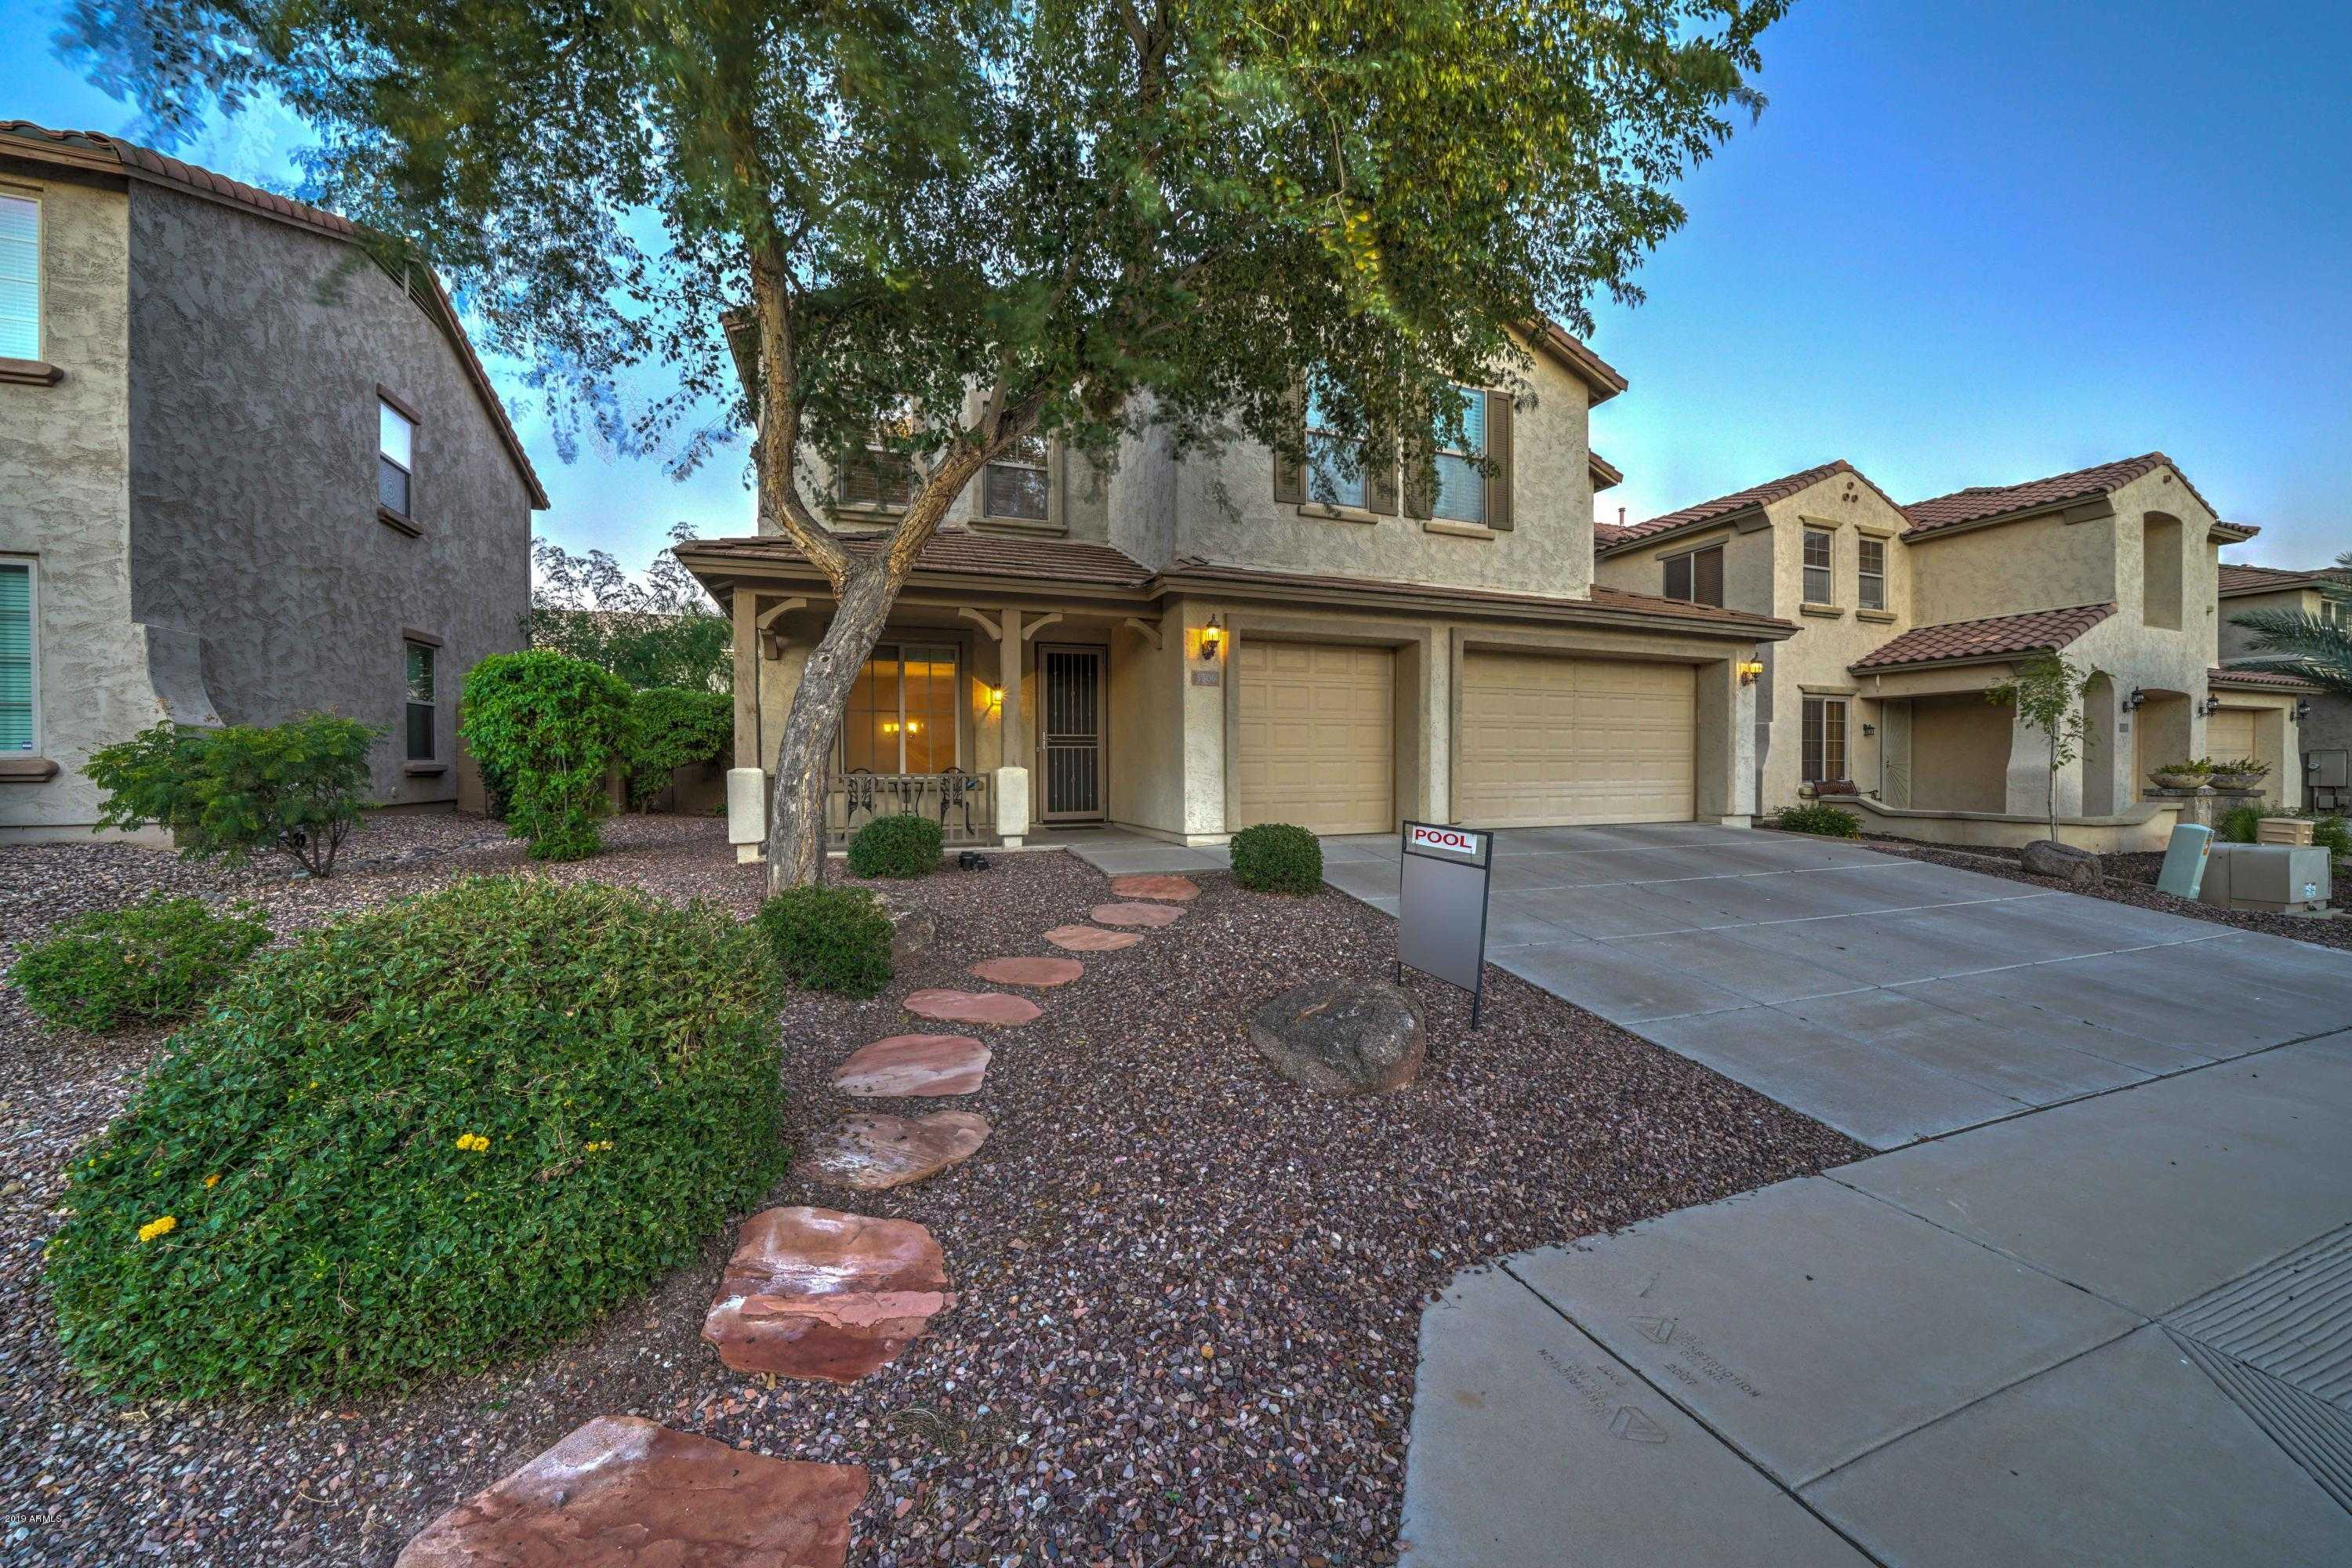 $464,800 - 6Br/4Ba - Home for Sale in Stetson Valley Parcel 34, Phoenix